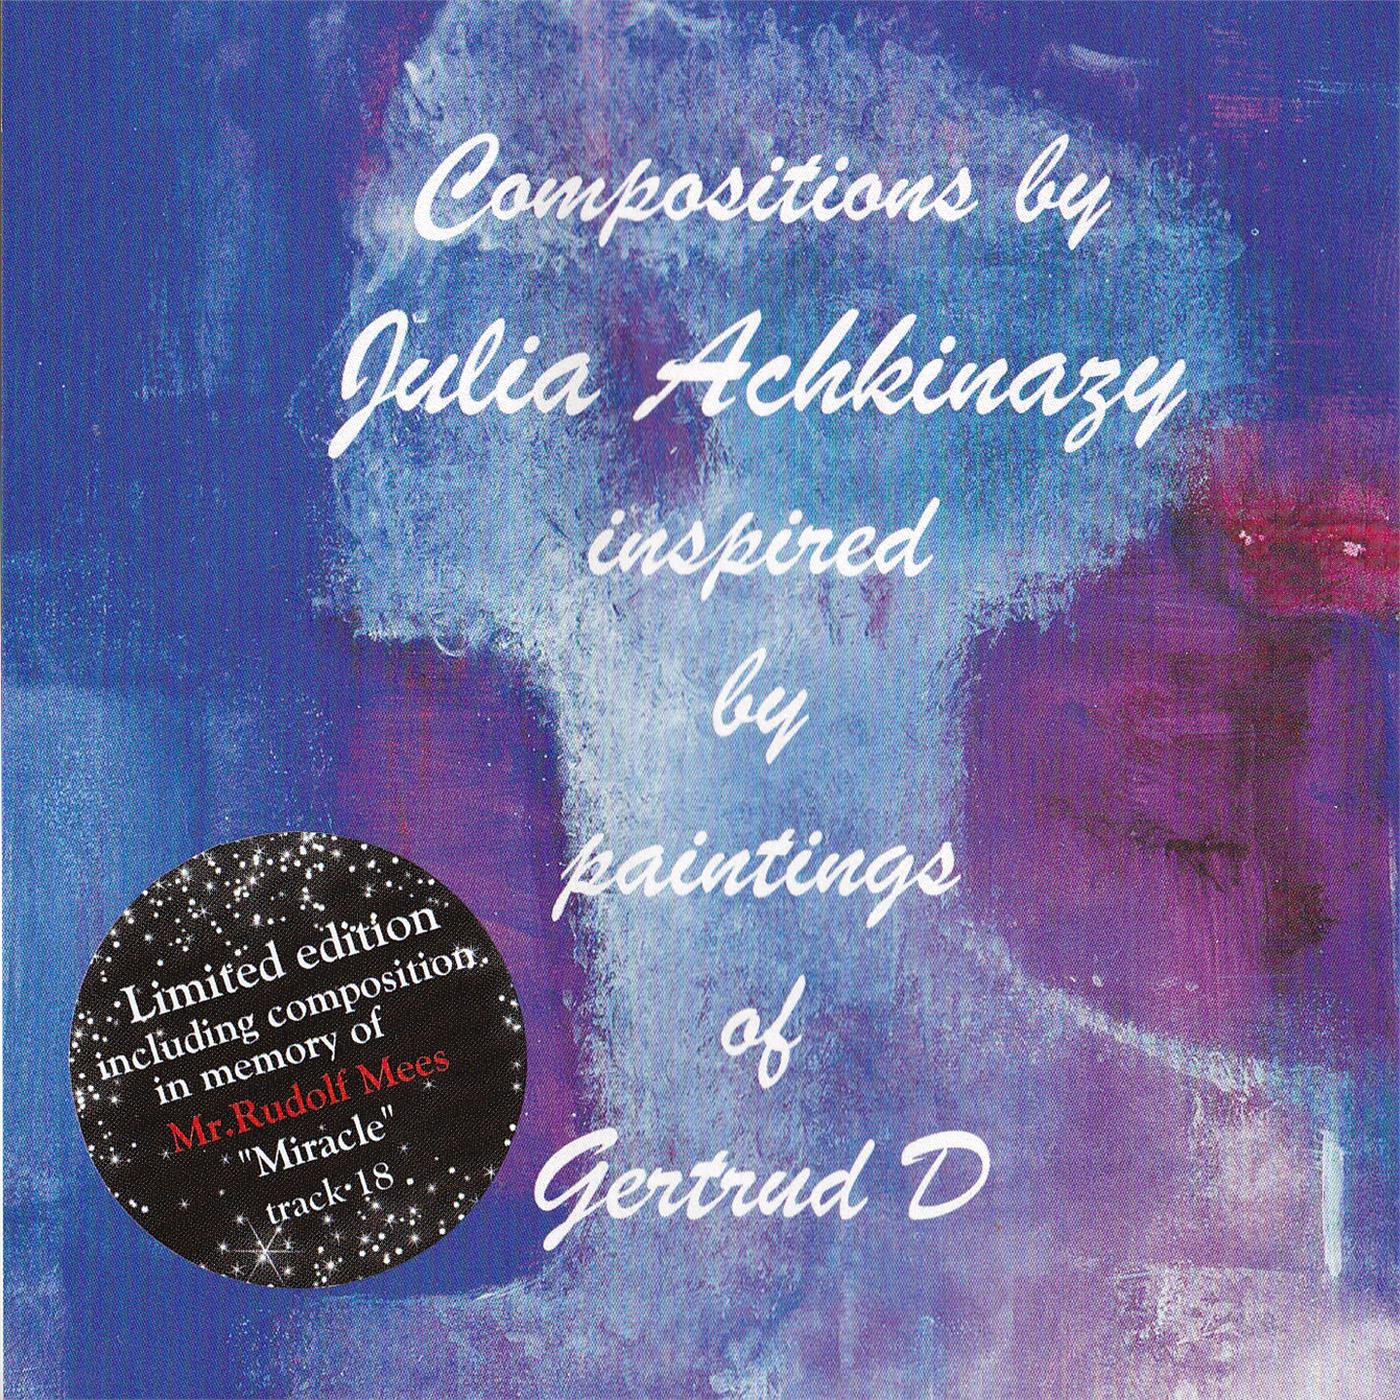 Compositions Julia Achkinazy paintings Gertrud D